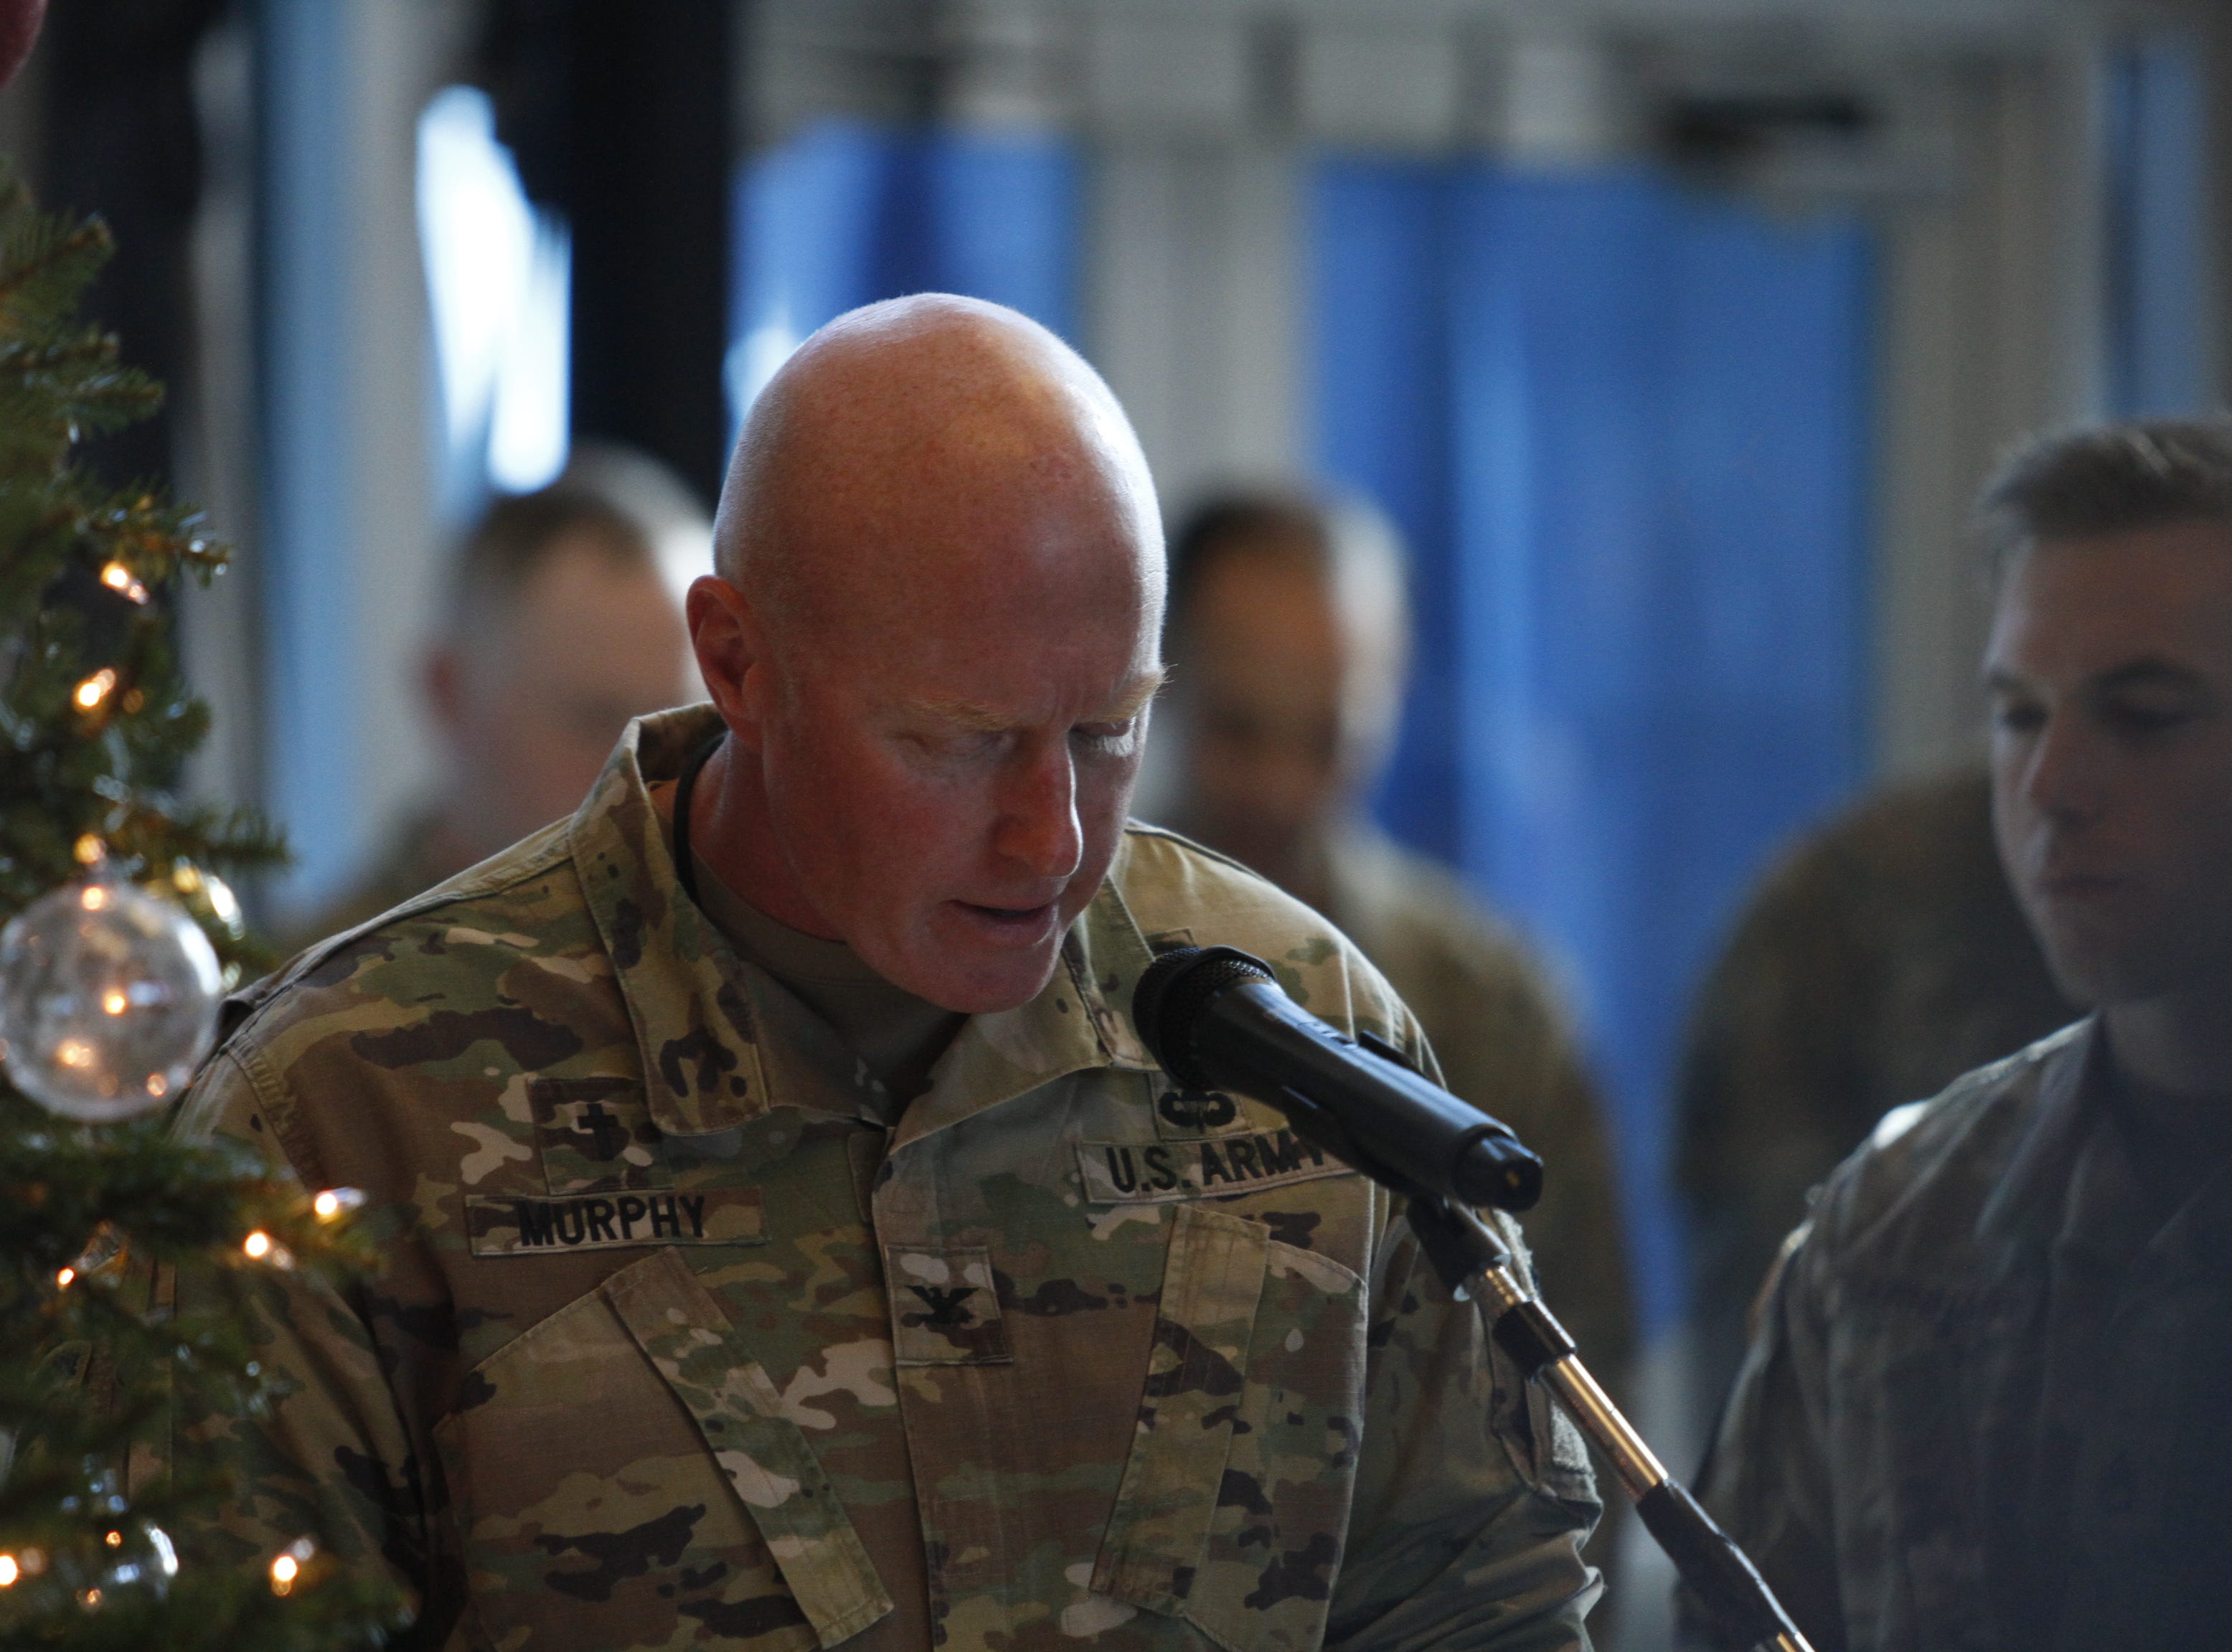 The uncasing of the 101st Airborne Division colors following its Afghanistan deployment, on Wednesday, Dec. 19, 2018.